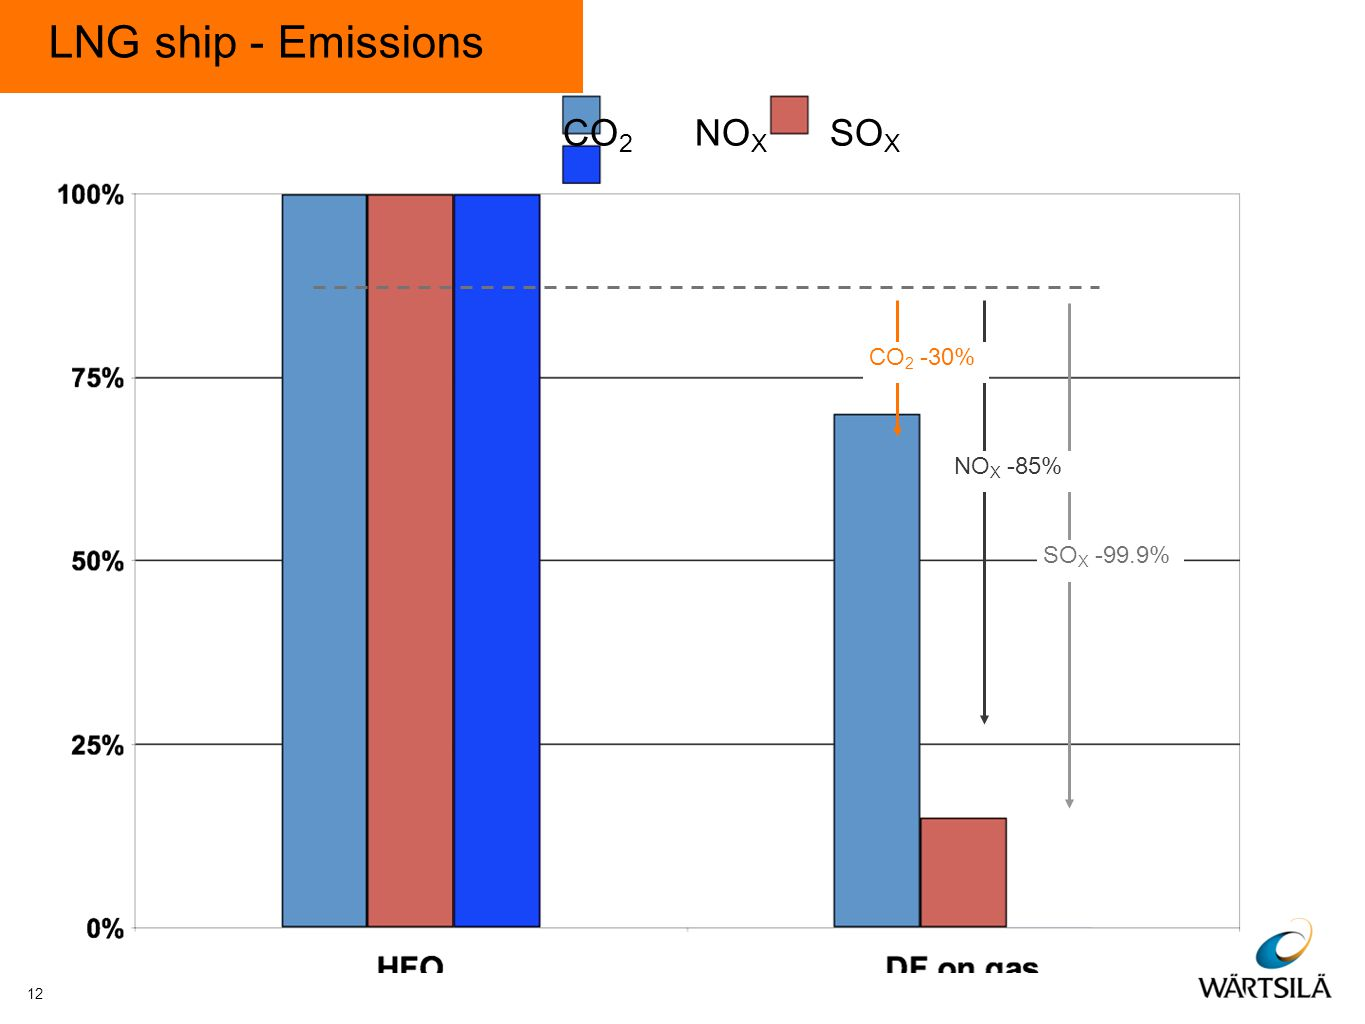 LNG ship - Emissions CO 2 NO X SO X CO 2 -30% NO X -85% SO X -99.9% 12